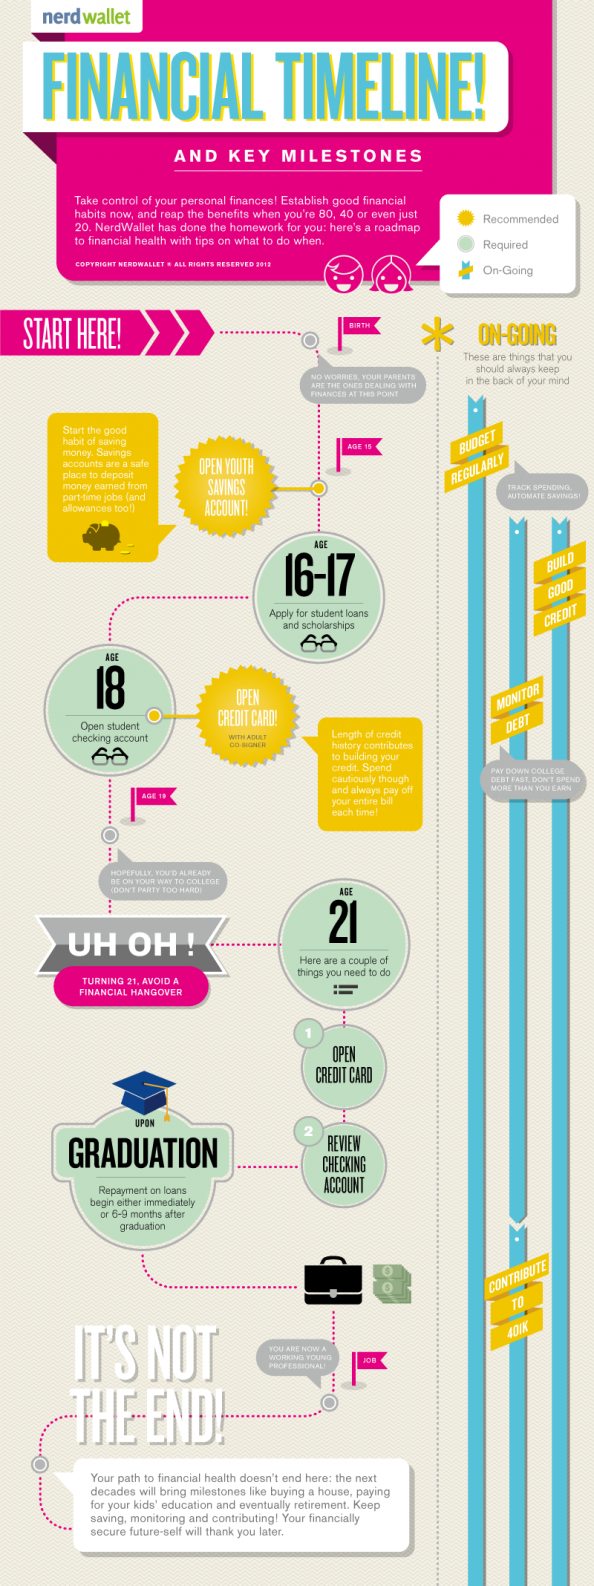 Financial Timeline and Key Milestones Infographic